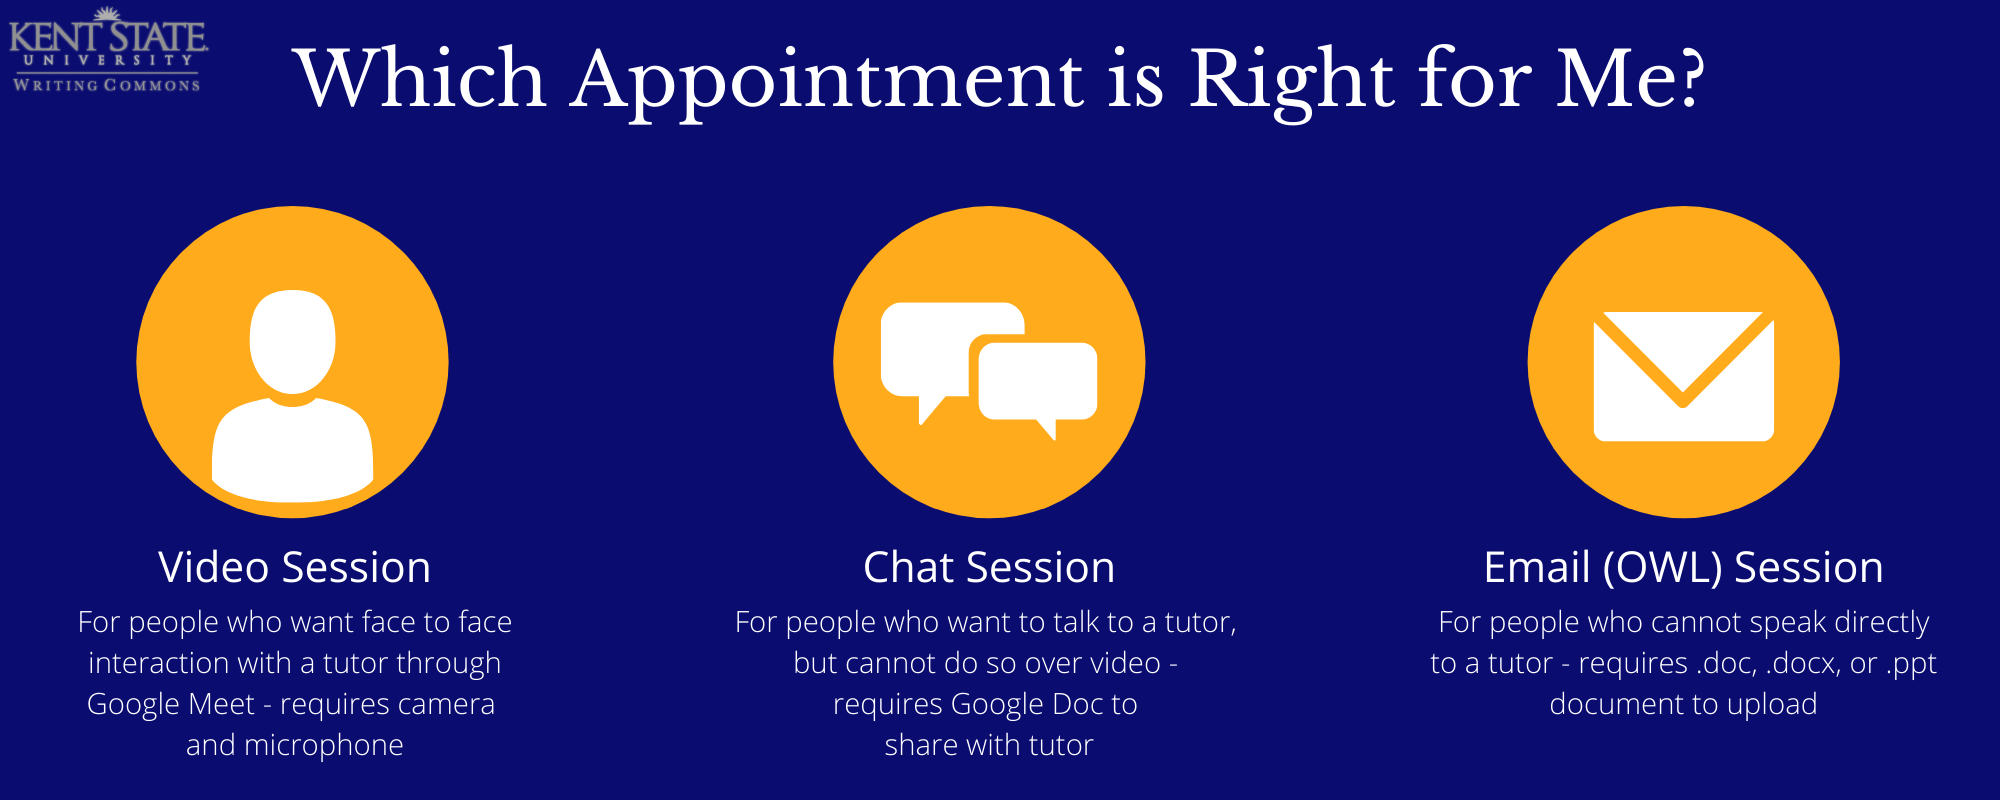 Which Appointment to Choose? Video Session: For people who want to be face to face with a tutor through Google Meet. Chat session: For people who want to talk to a tutor, but cannot do so over video. Email session: For people who cannot speak to tutor